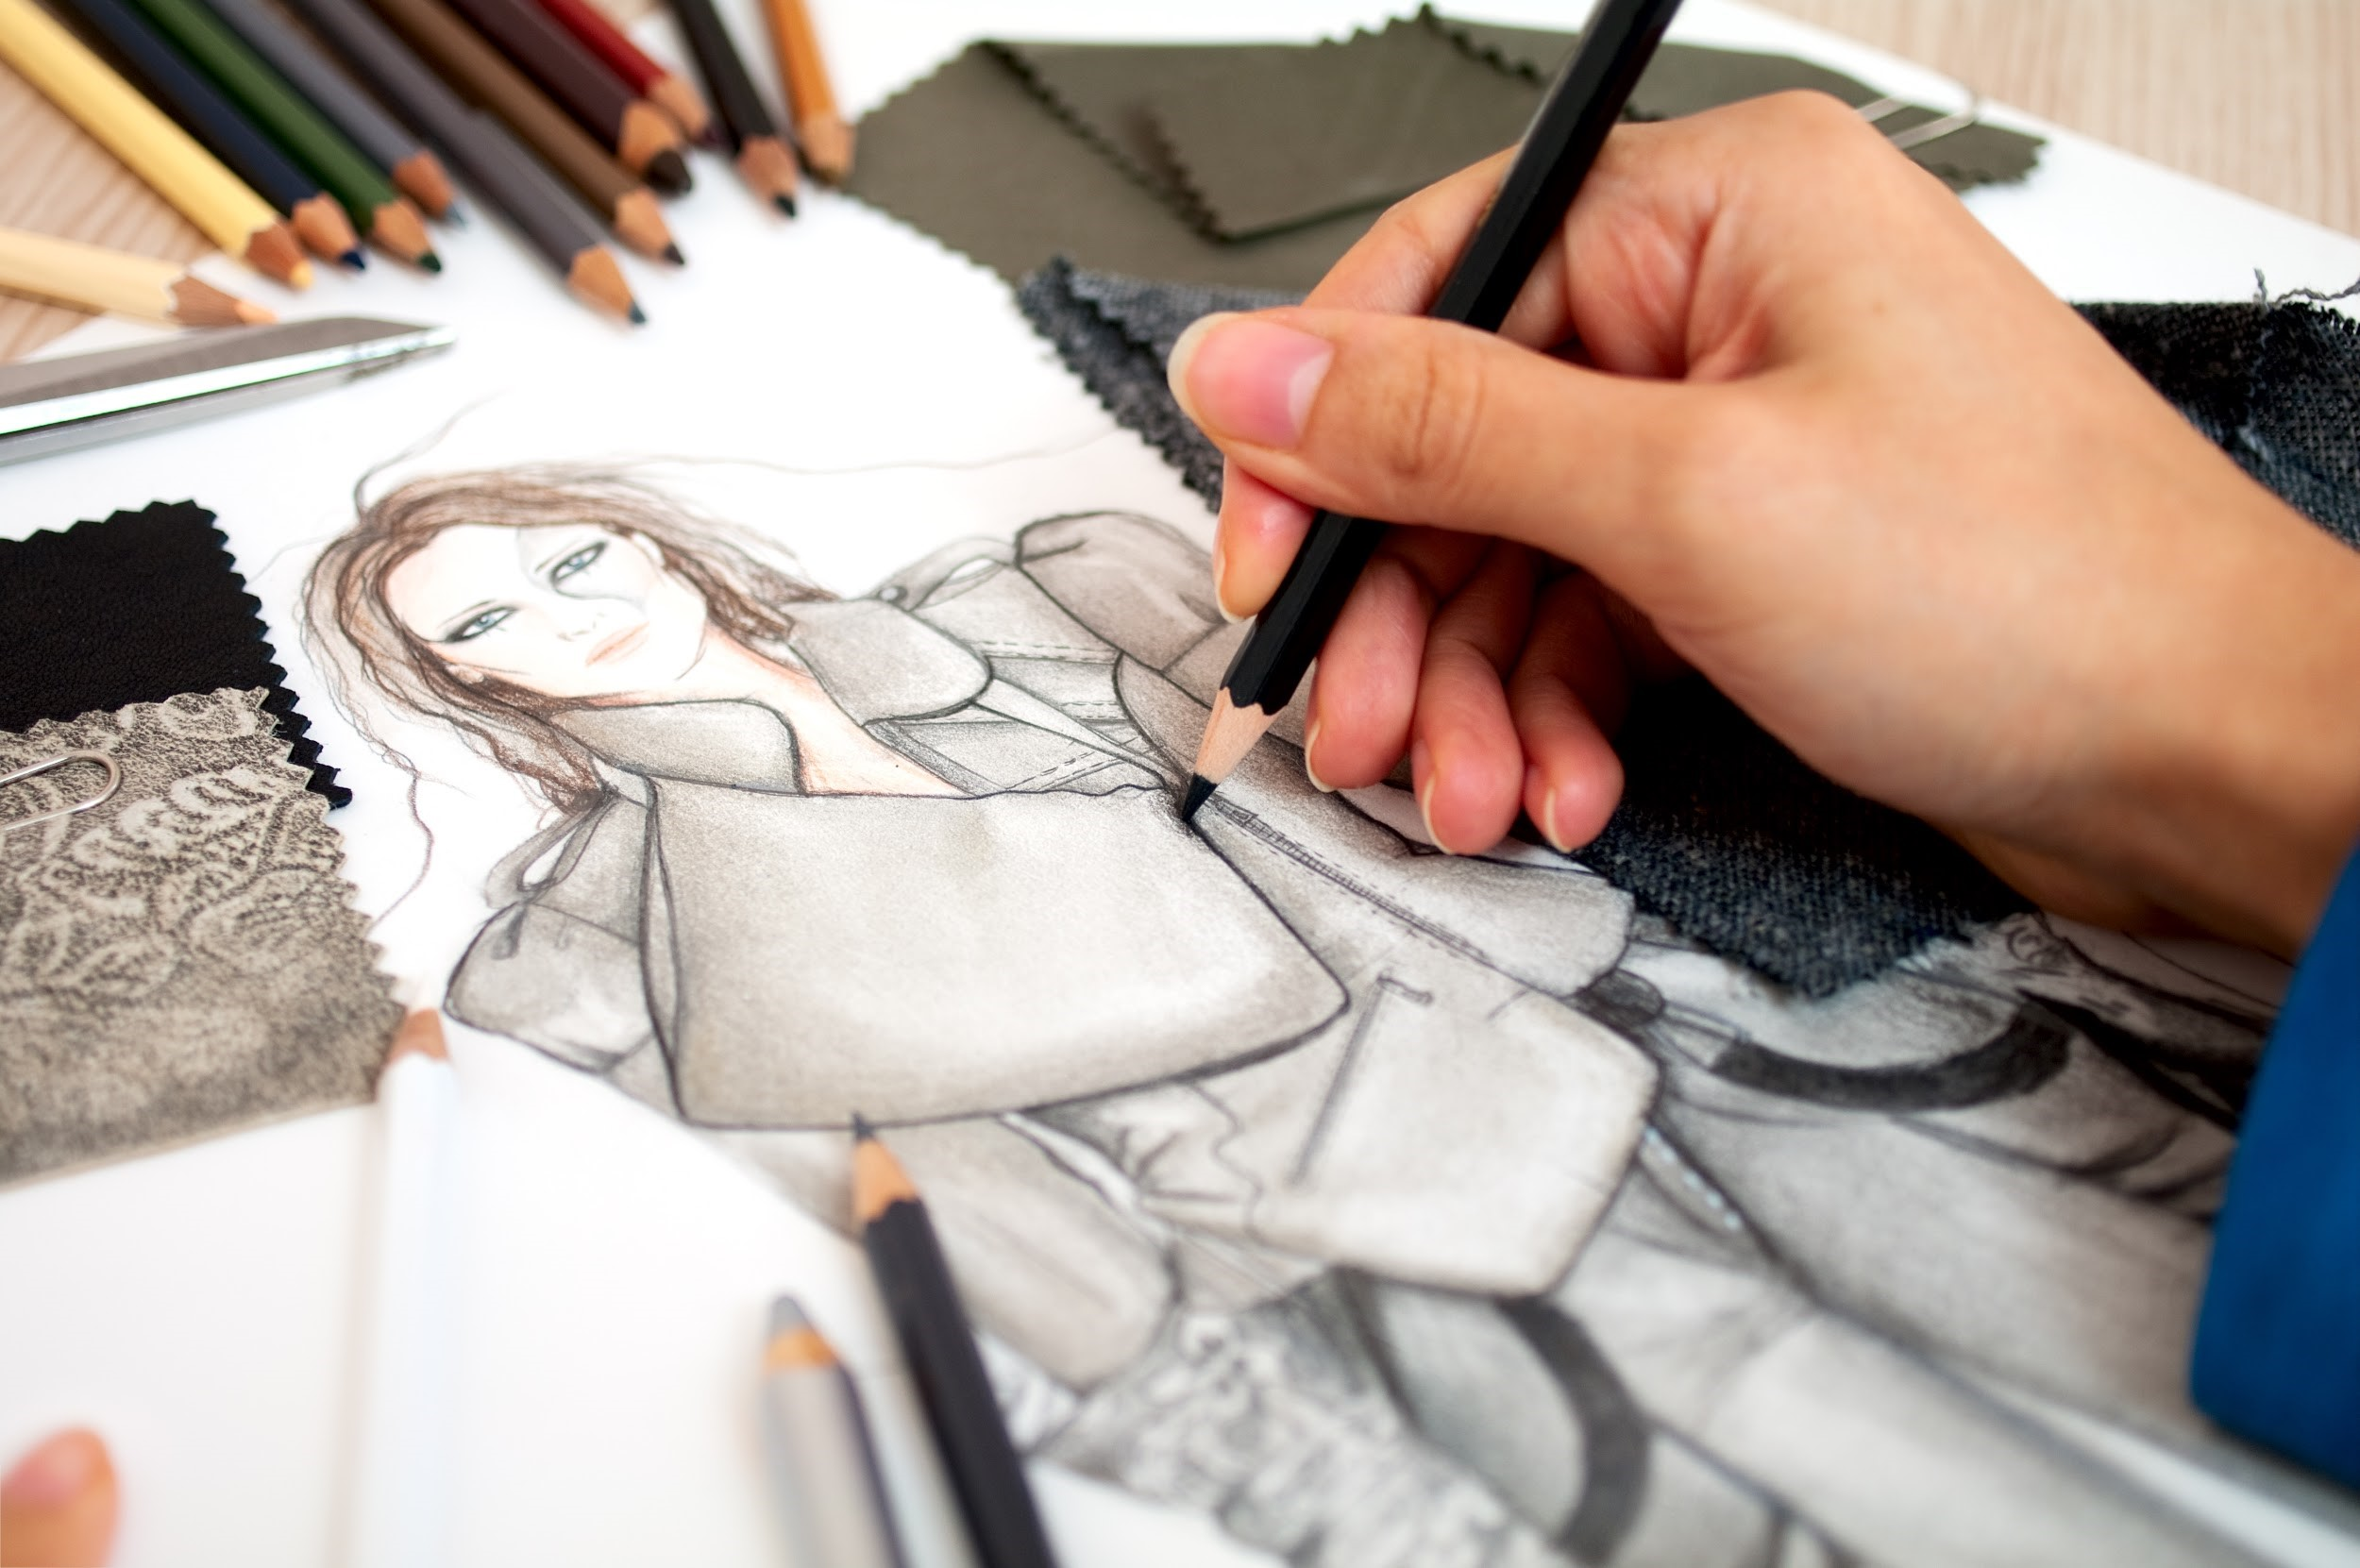 differences between fashion designers and fashion stylist - Differences Between Fashion Designers and Fashion Stylist - Differences Between Fashion Designers and Fashion Stylist